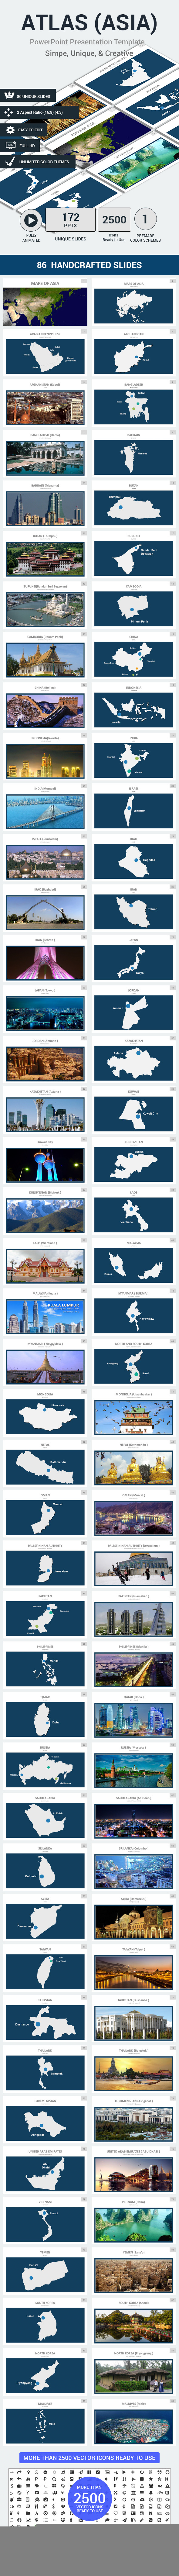 ATLAS (ASIA) PowerPoint Presentation Template (PowerPoint Templates)